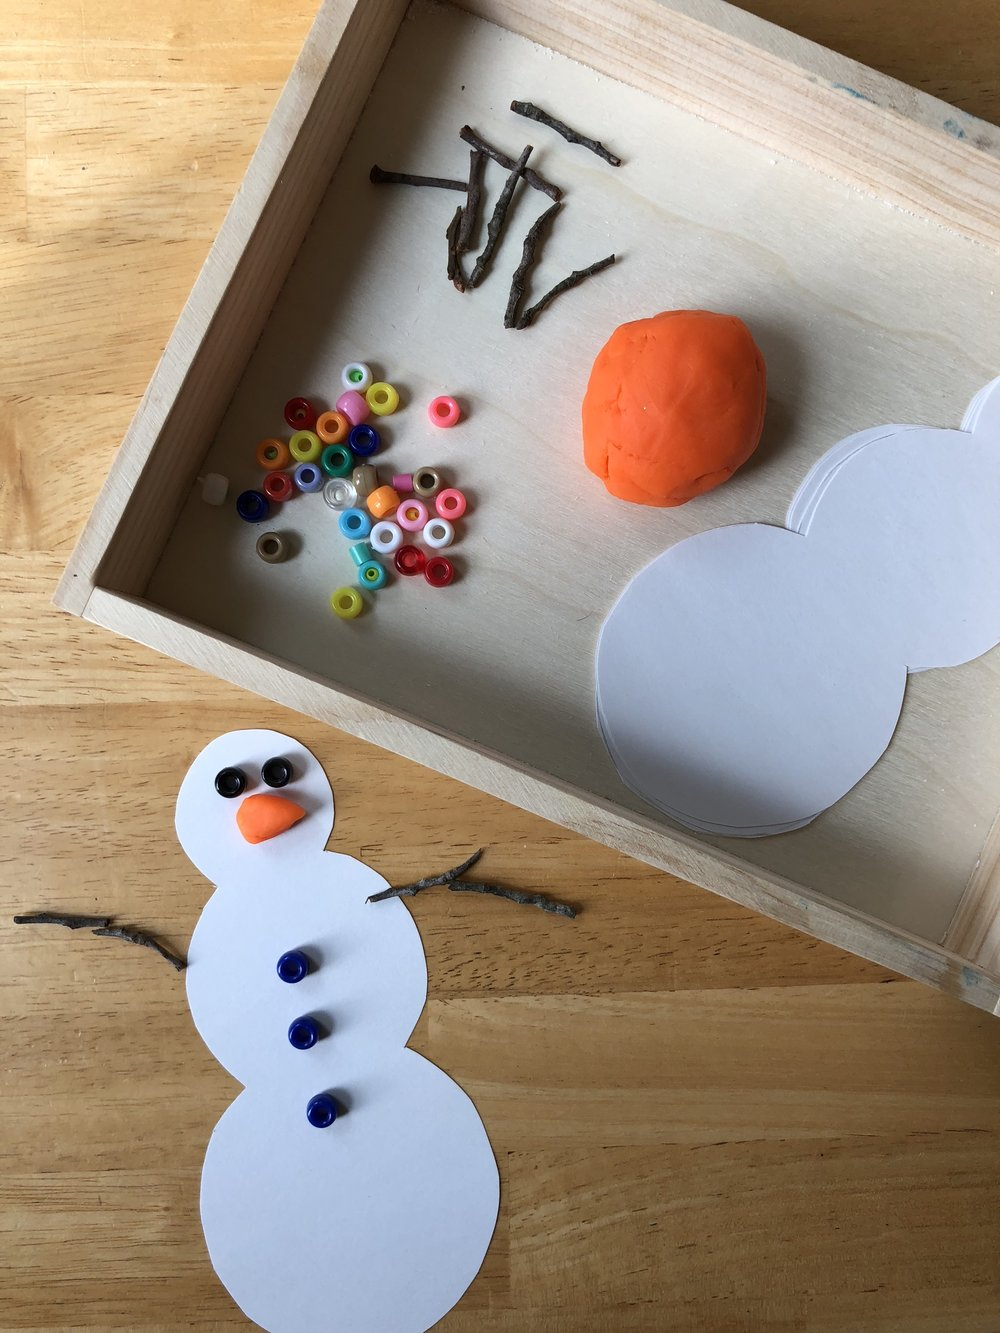 snowman invitation to play.jpg